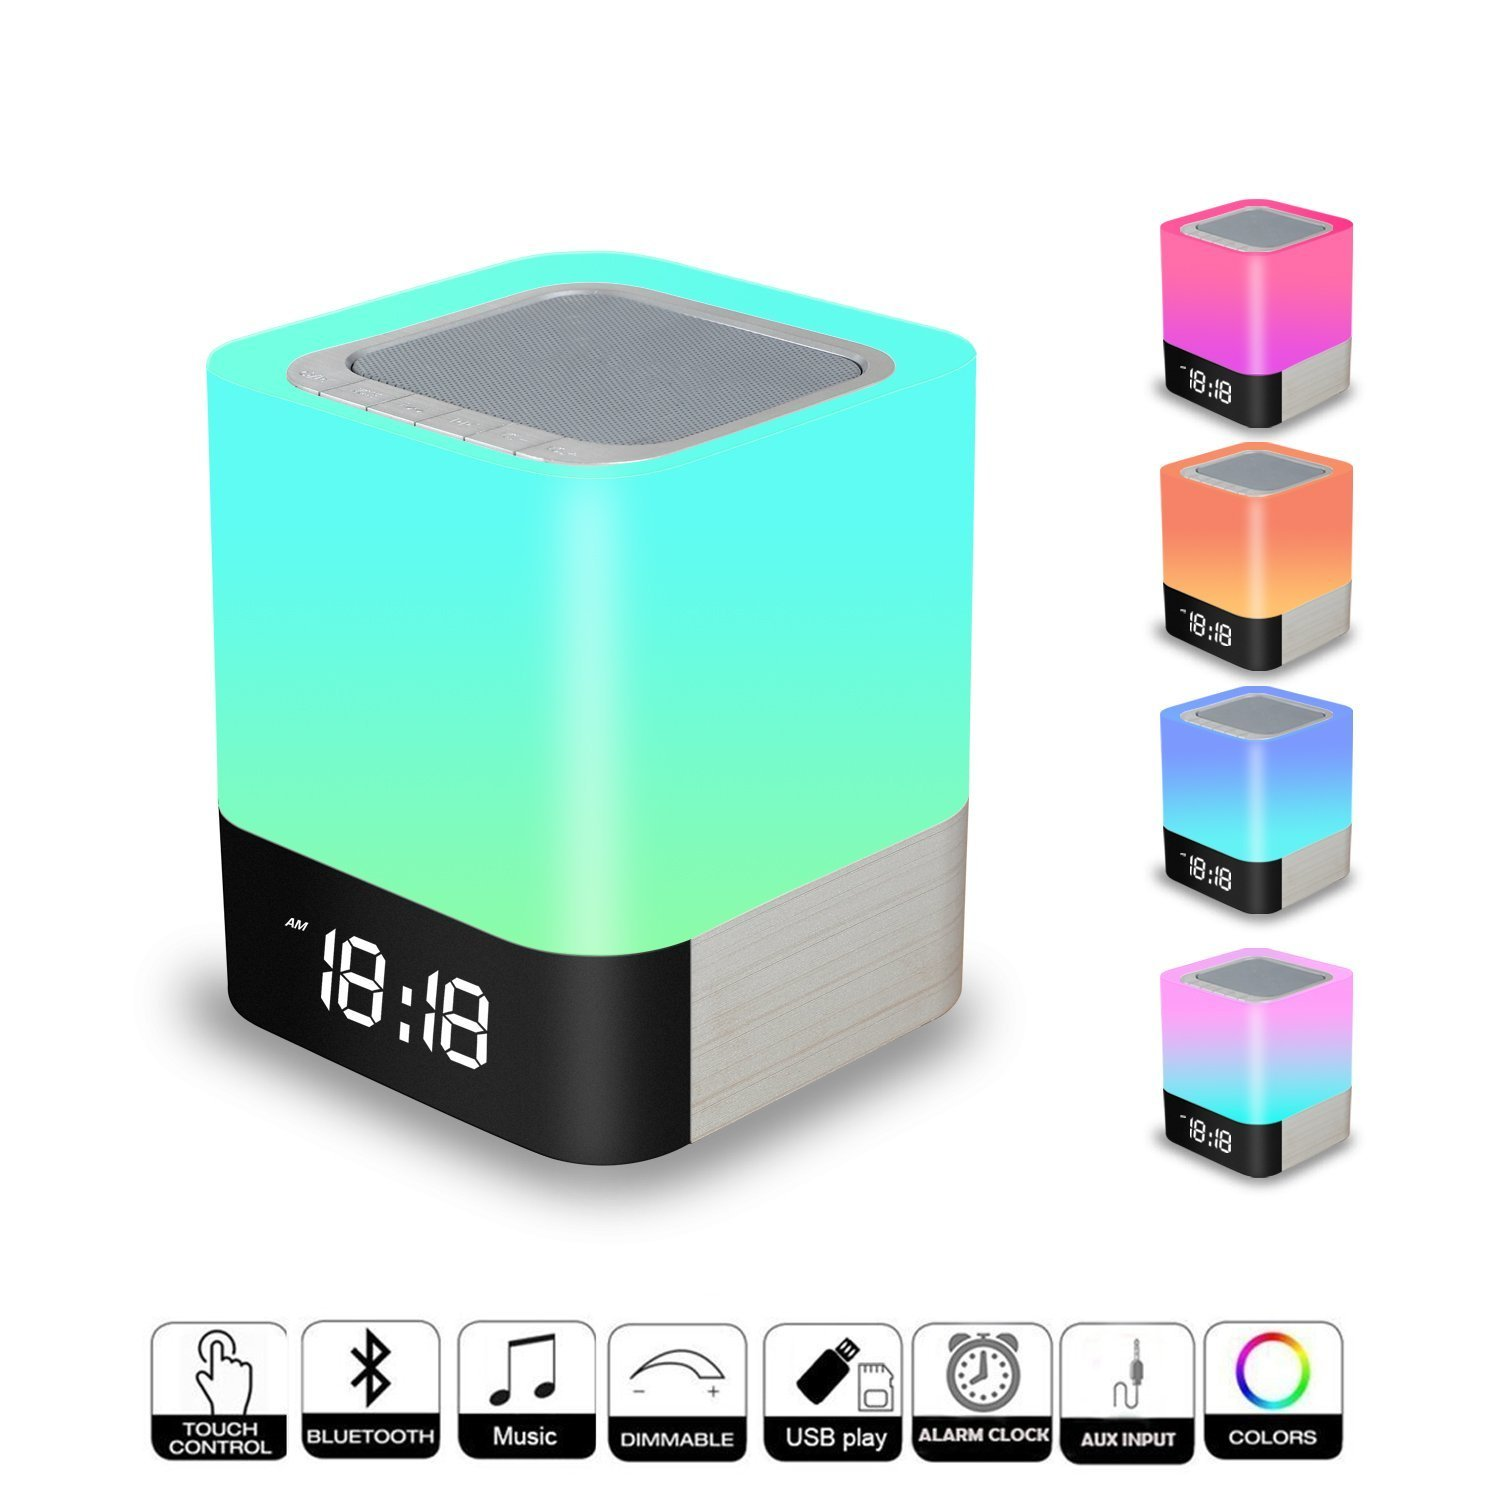 Portable Bluetooth Speaker + LED Night Light Lamp, with LED Display, Handsfree Speakerphone, Alarm Clock, Micro SD Card & USB & AUX Slots for Smart Phone, MP3, iPad, Tablet and More (10 hrs Playtime)